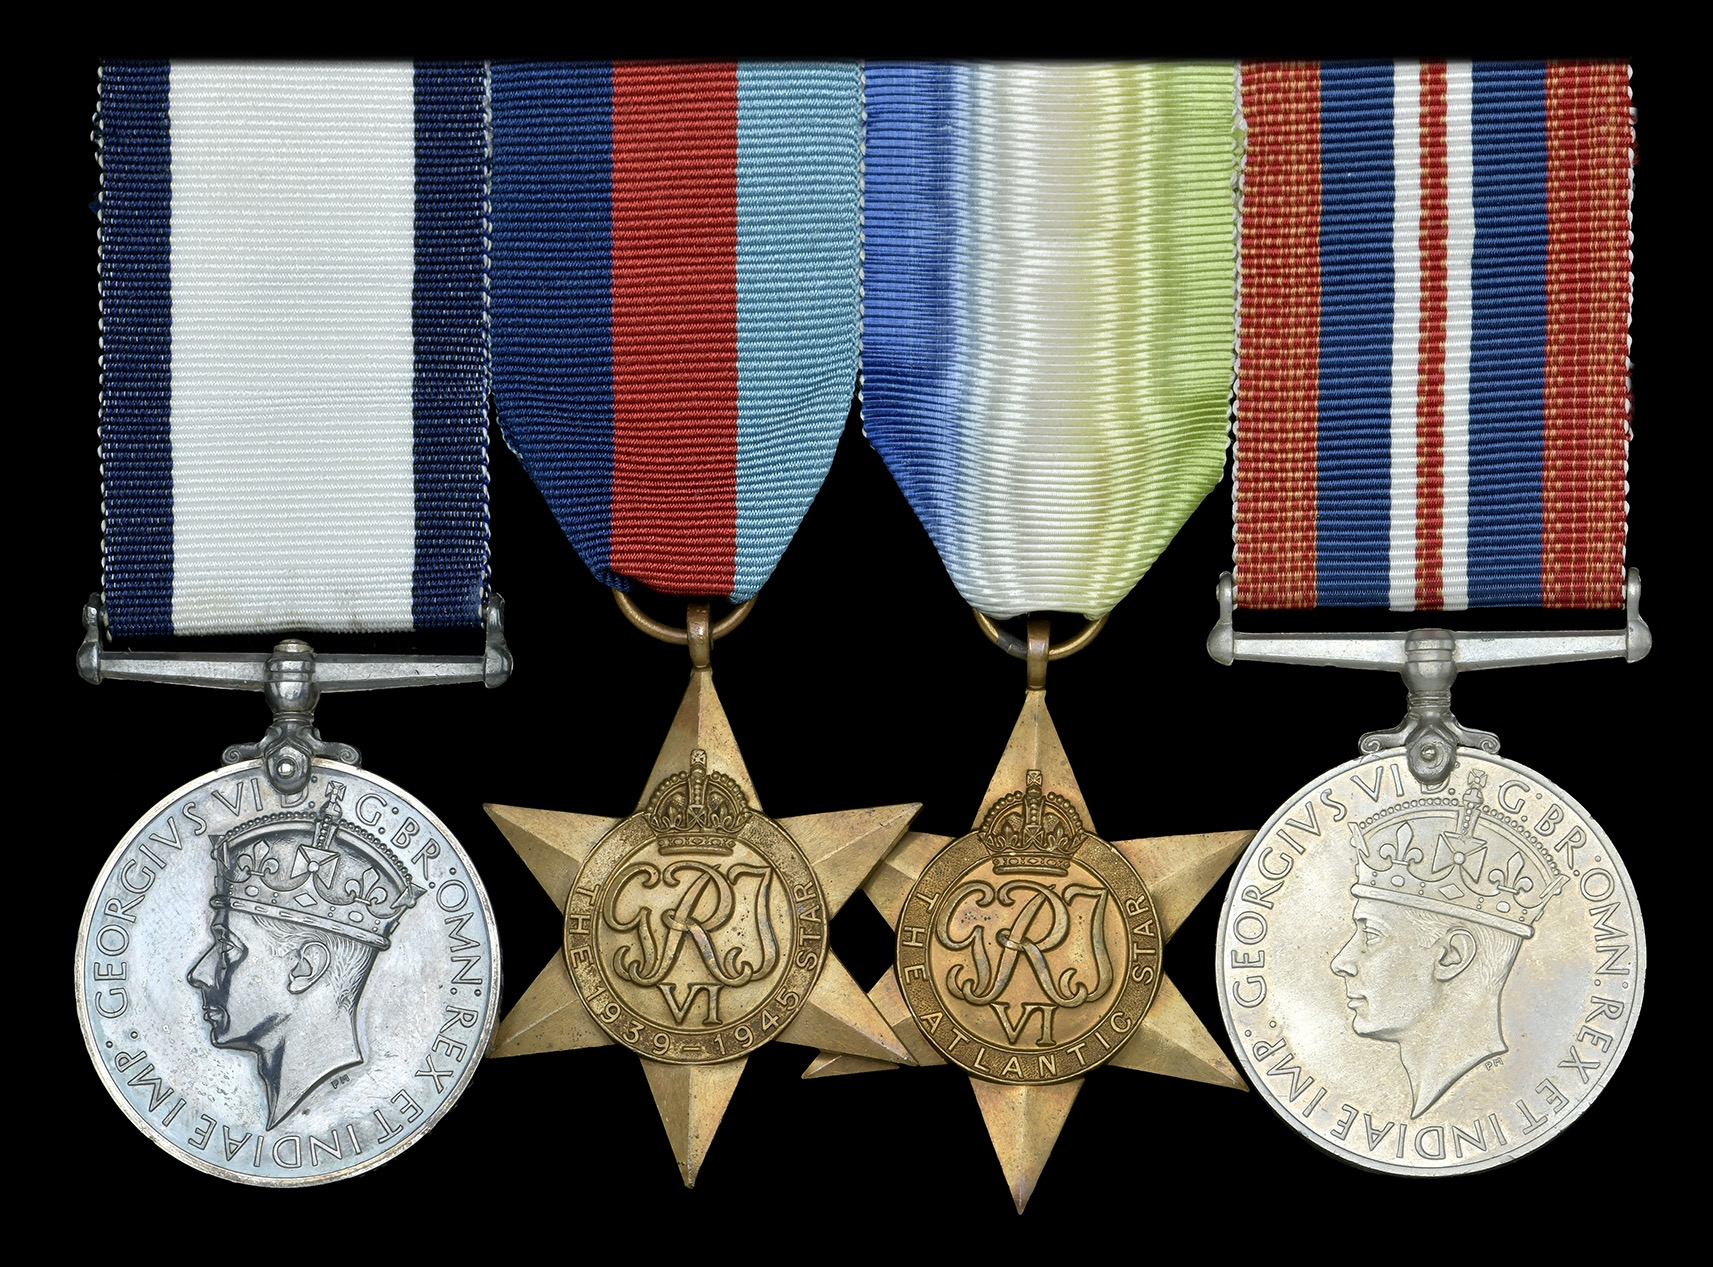 Conspicuous Gallentry medal